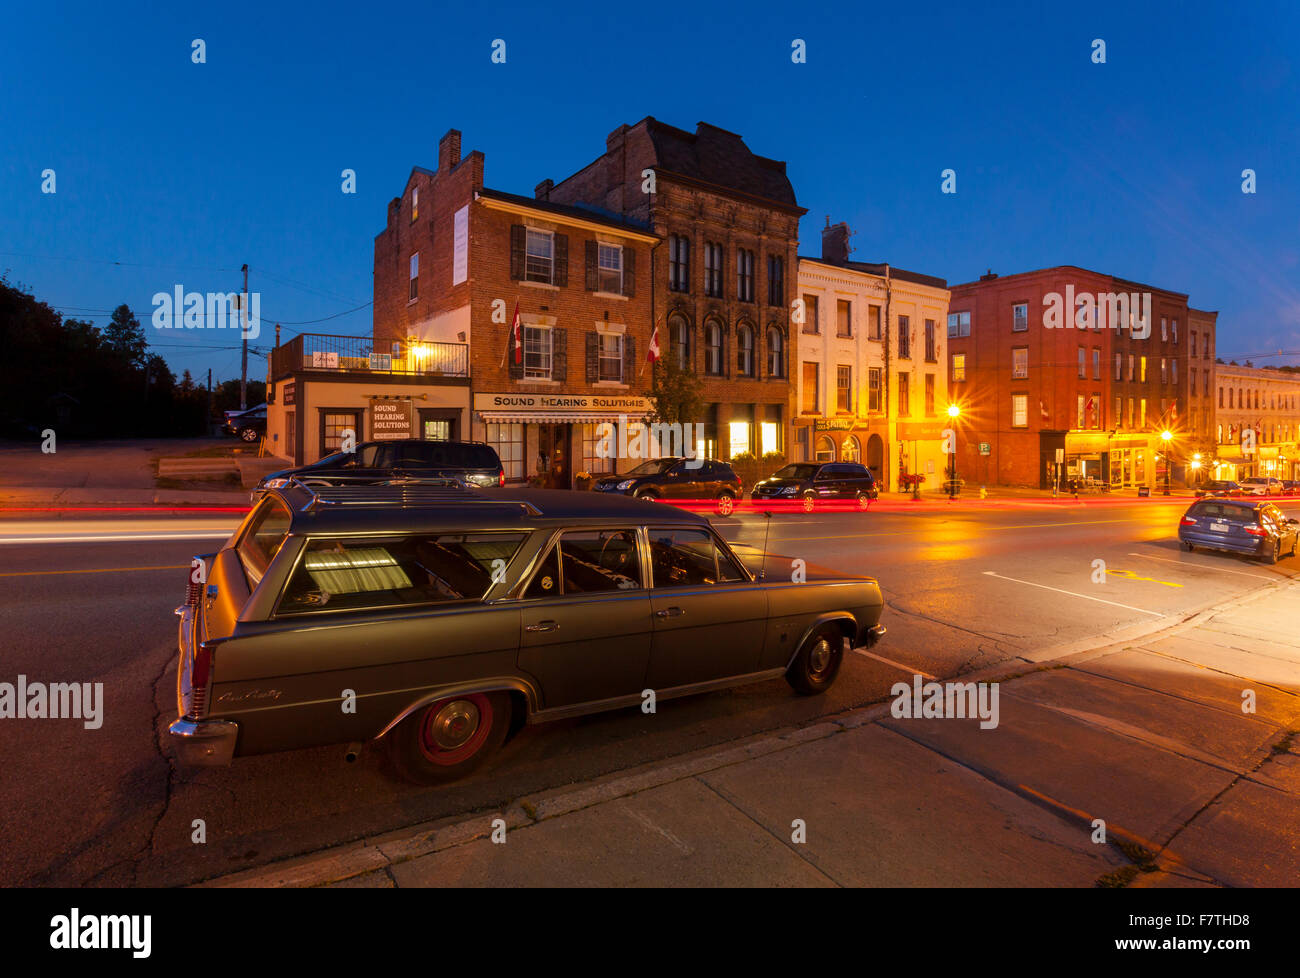 Walton Street with a Rambler Ambassador in the foreground in downtown Port Hope at dusk. Ontario, Canada. - Stock Image